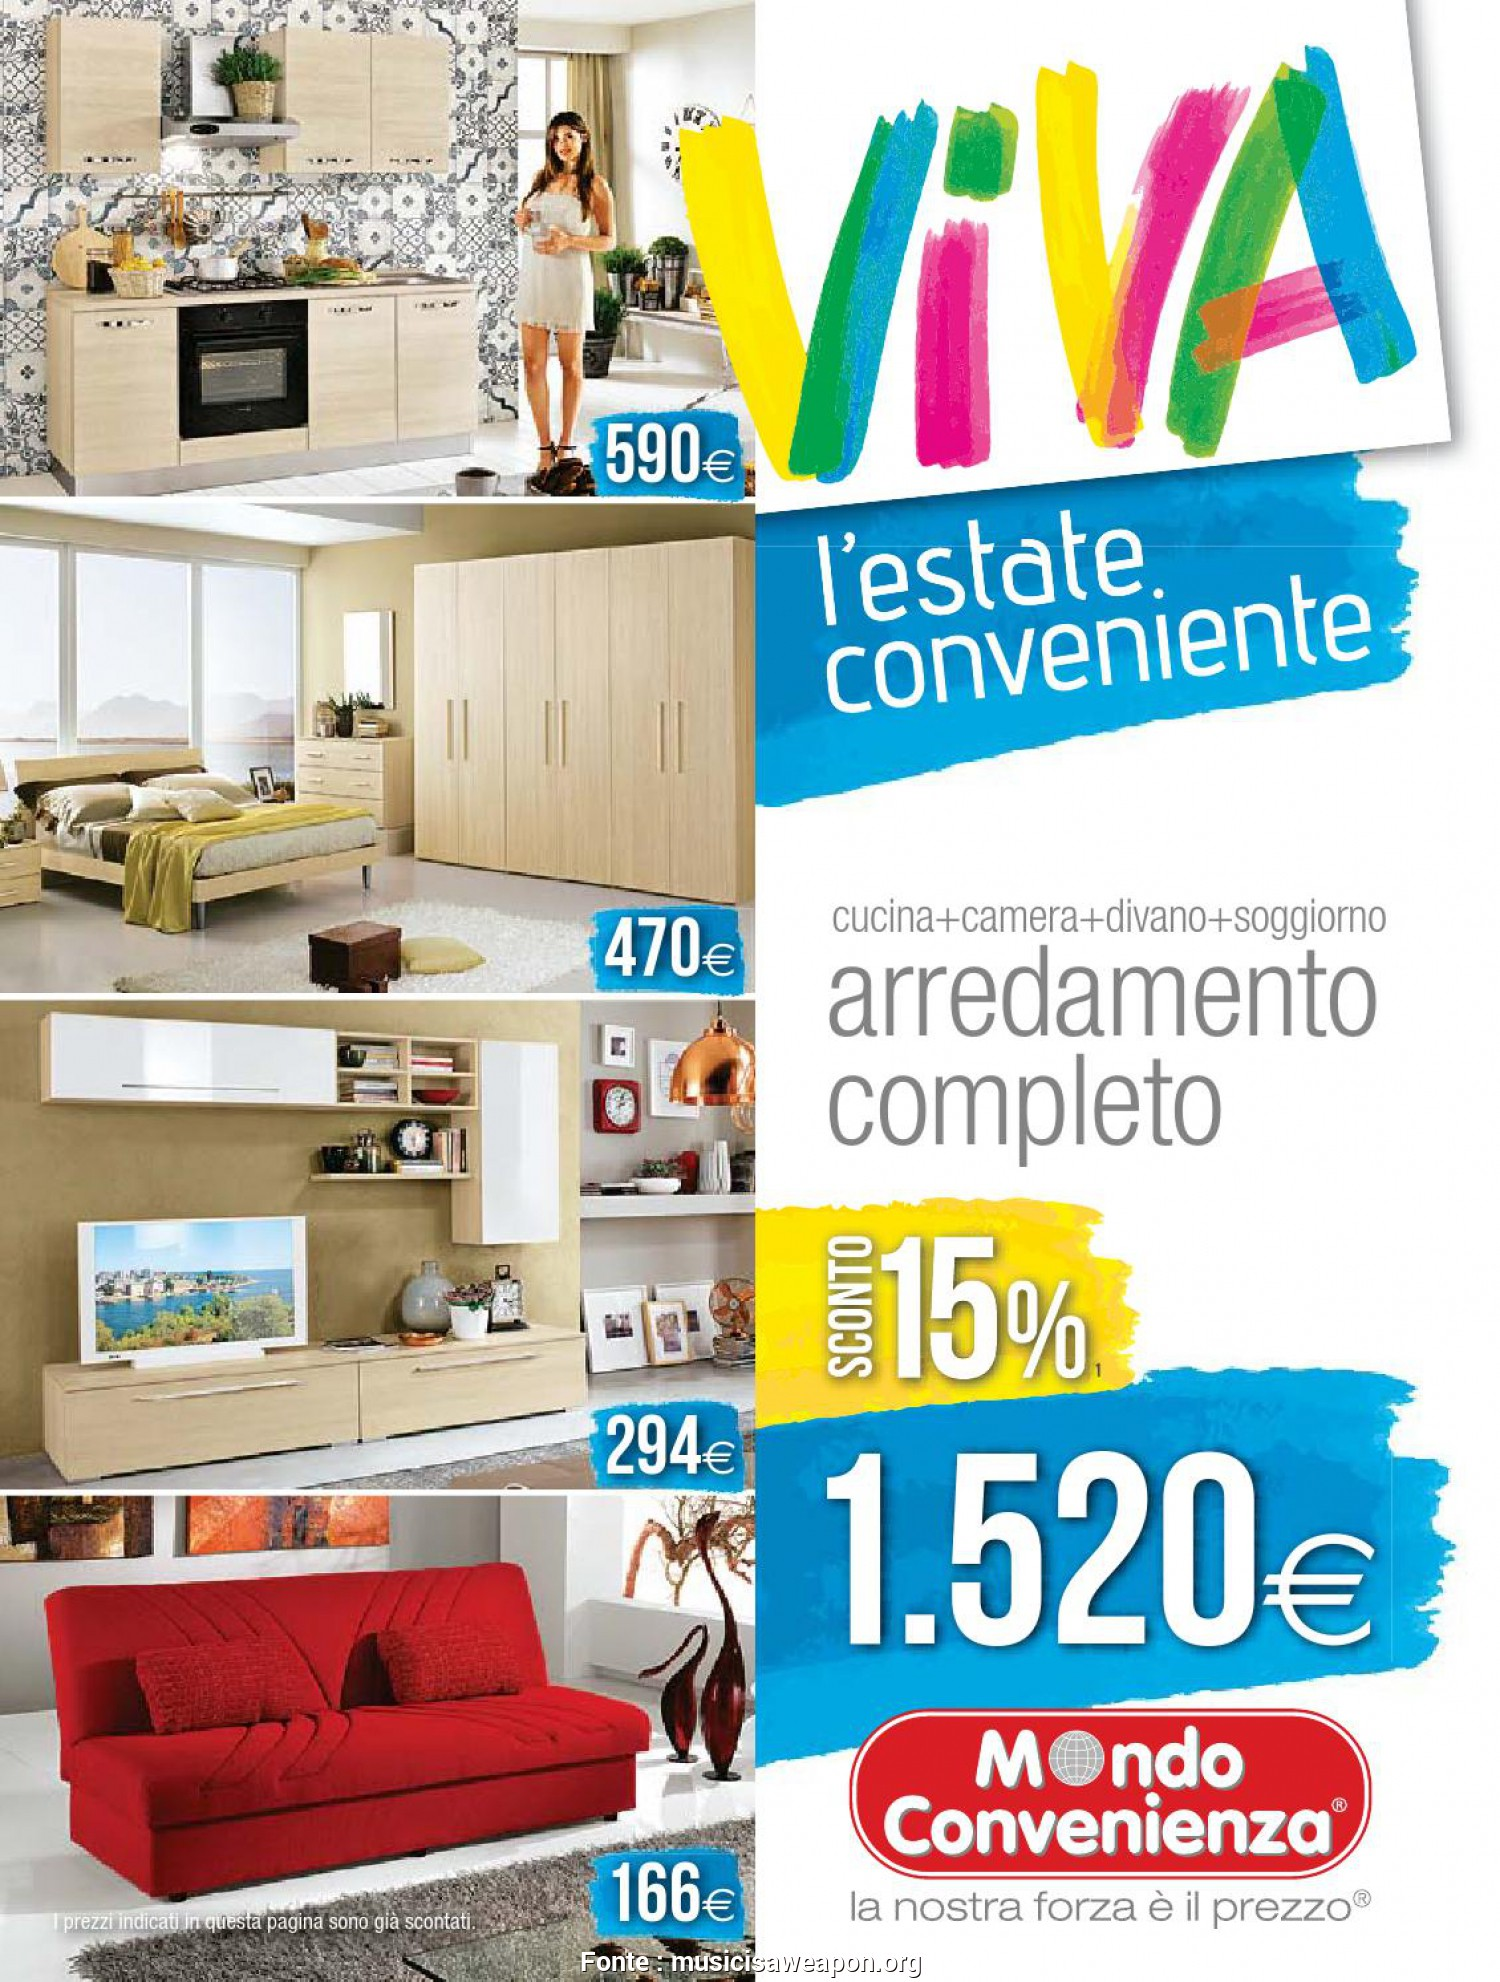 Volantino Mondo Convenienza Catanzaro, Minimalista Catalogo Centro Convenienza Interesting Centro Convenienza Catalogo, Catalogo Centro Convenienza E Page 1 42 Con